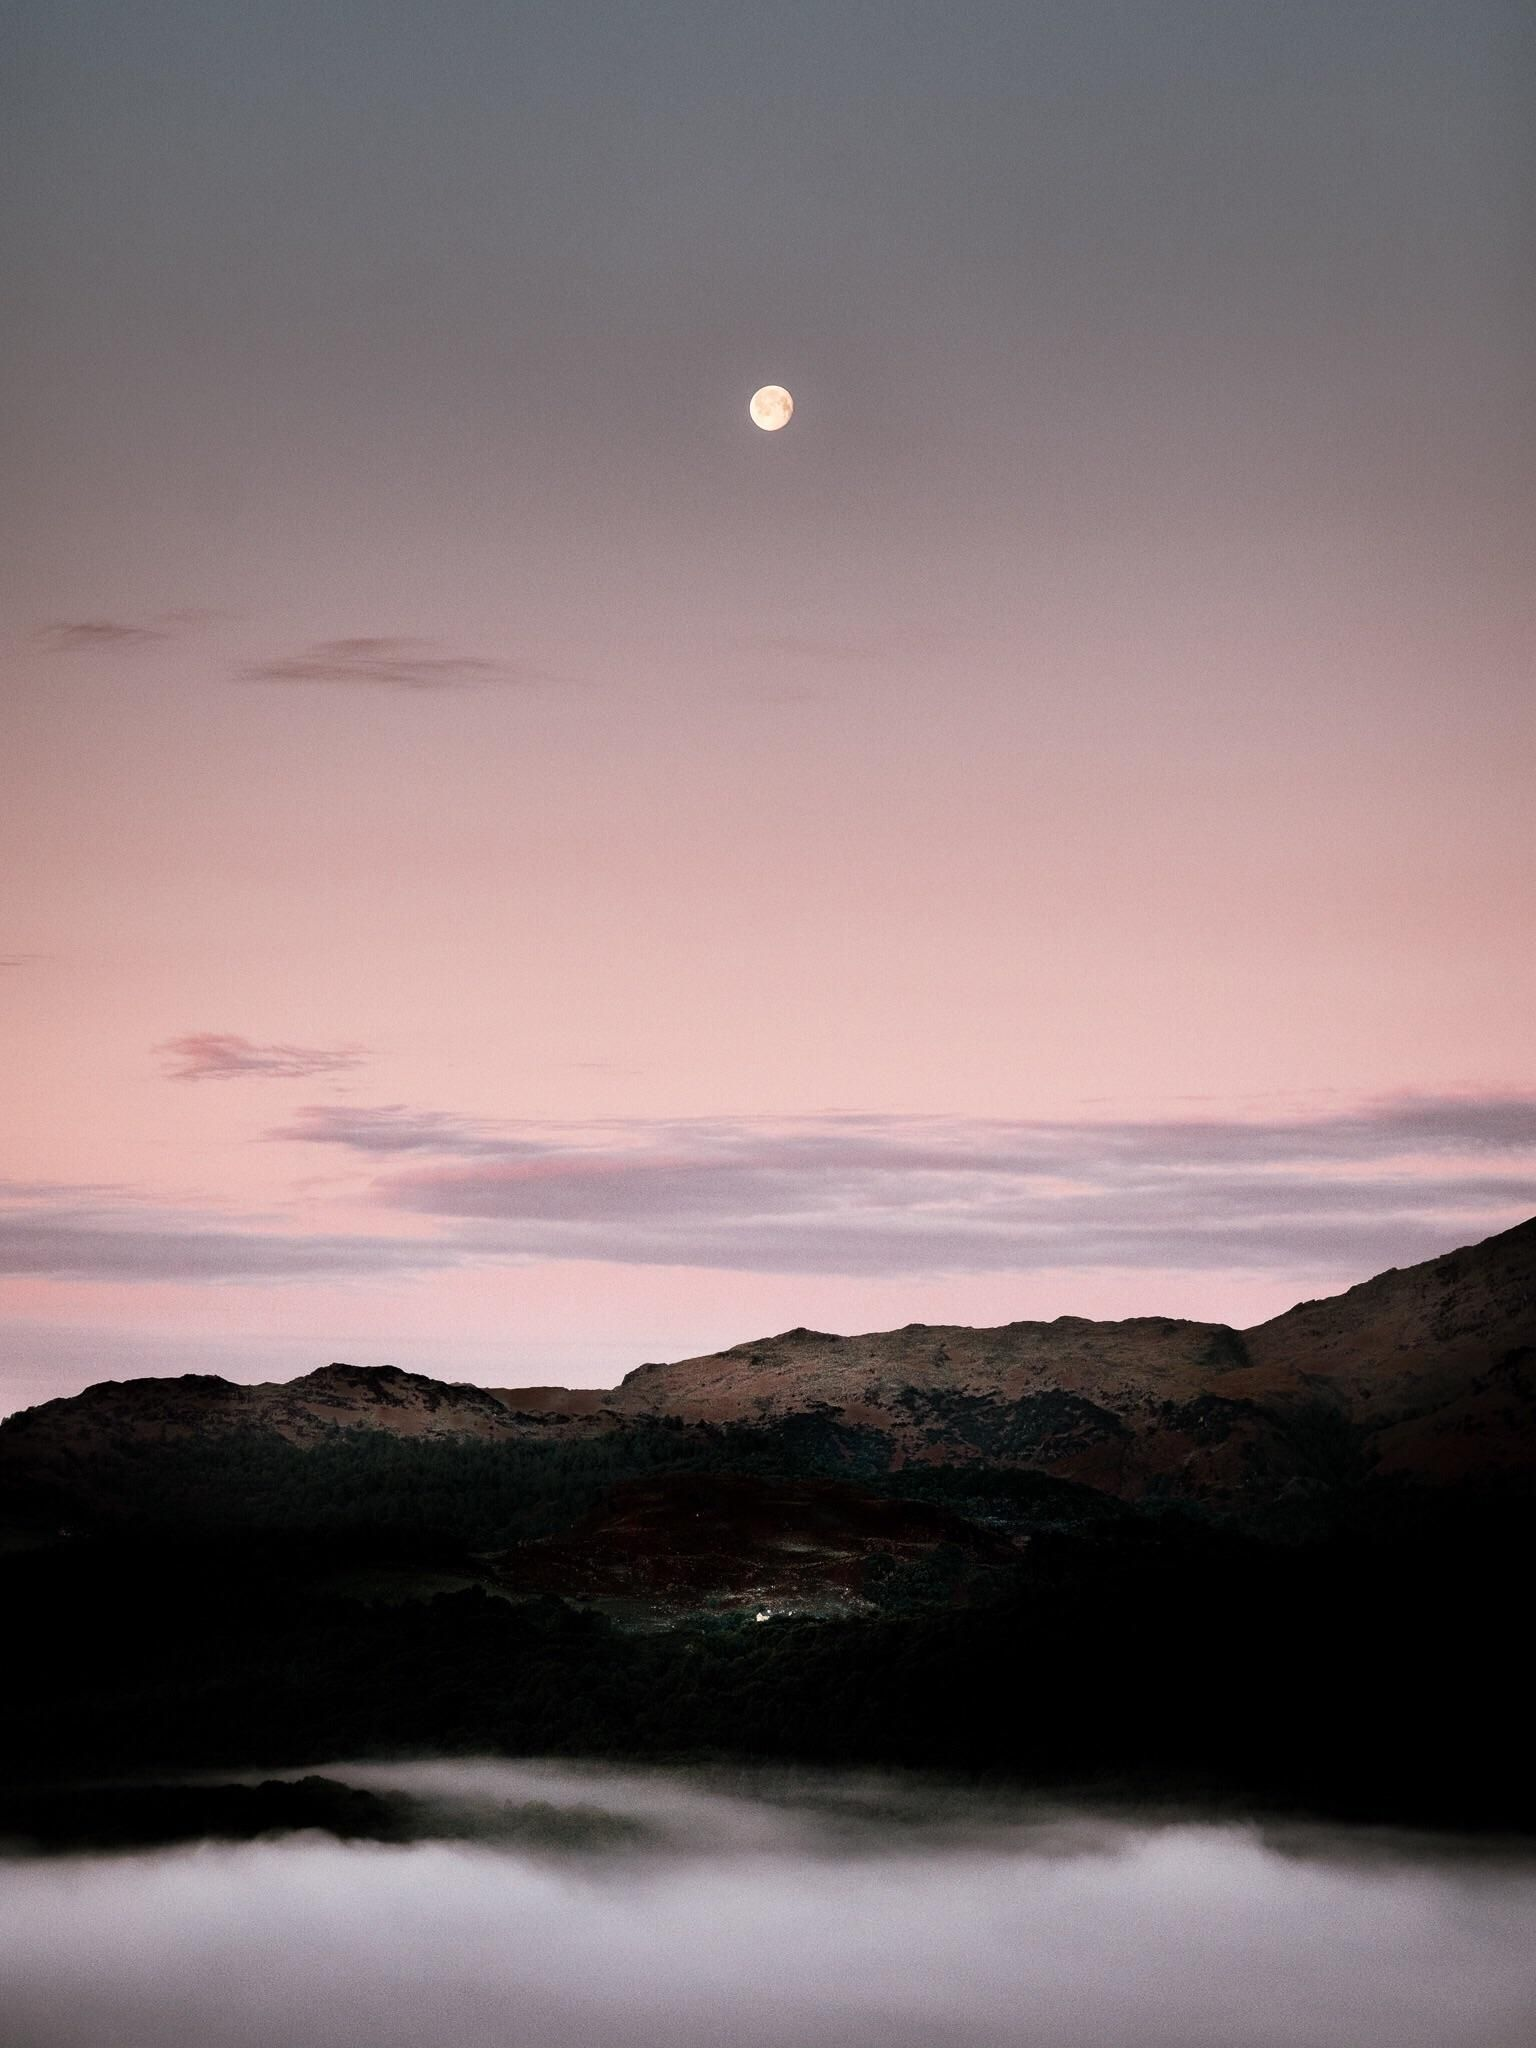 Moonrise over the Lakeland Mountains [OC] [1536x2048] Want